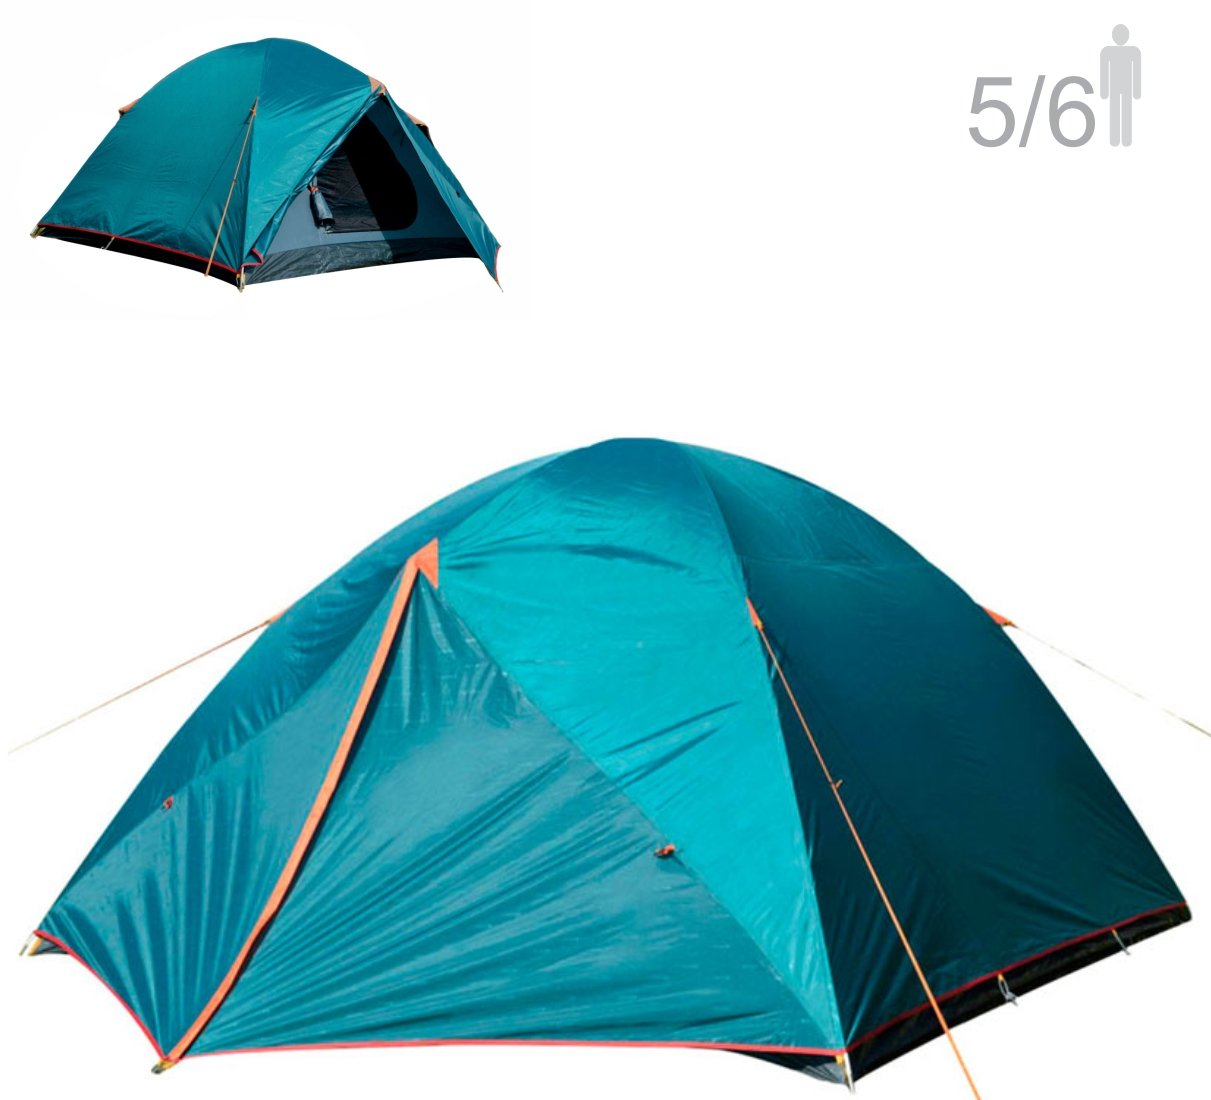 NTK Colorado GT 5 to 6 Person 9.8 by 9.8 Foot Outdoor Dome Family Camping Tent 100% Waterproof 2500mm, Easy Assembly, Durable Fabric Full Coverage Rainfly - Micro Mosquito Mesh for Maximum Comfort